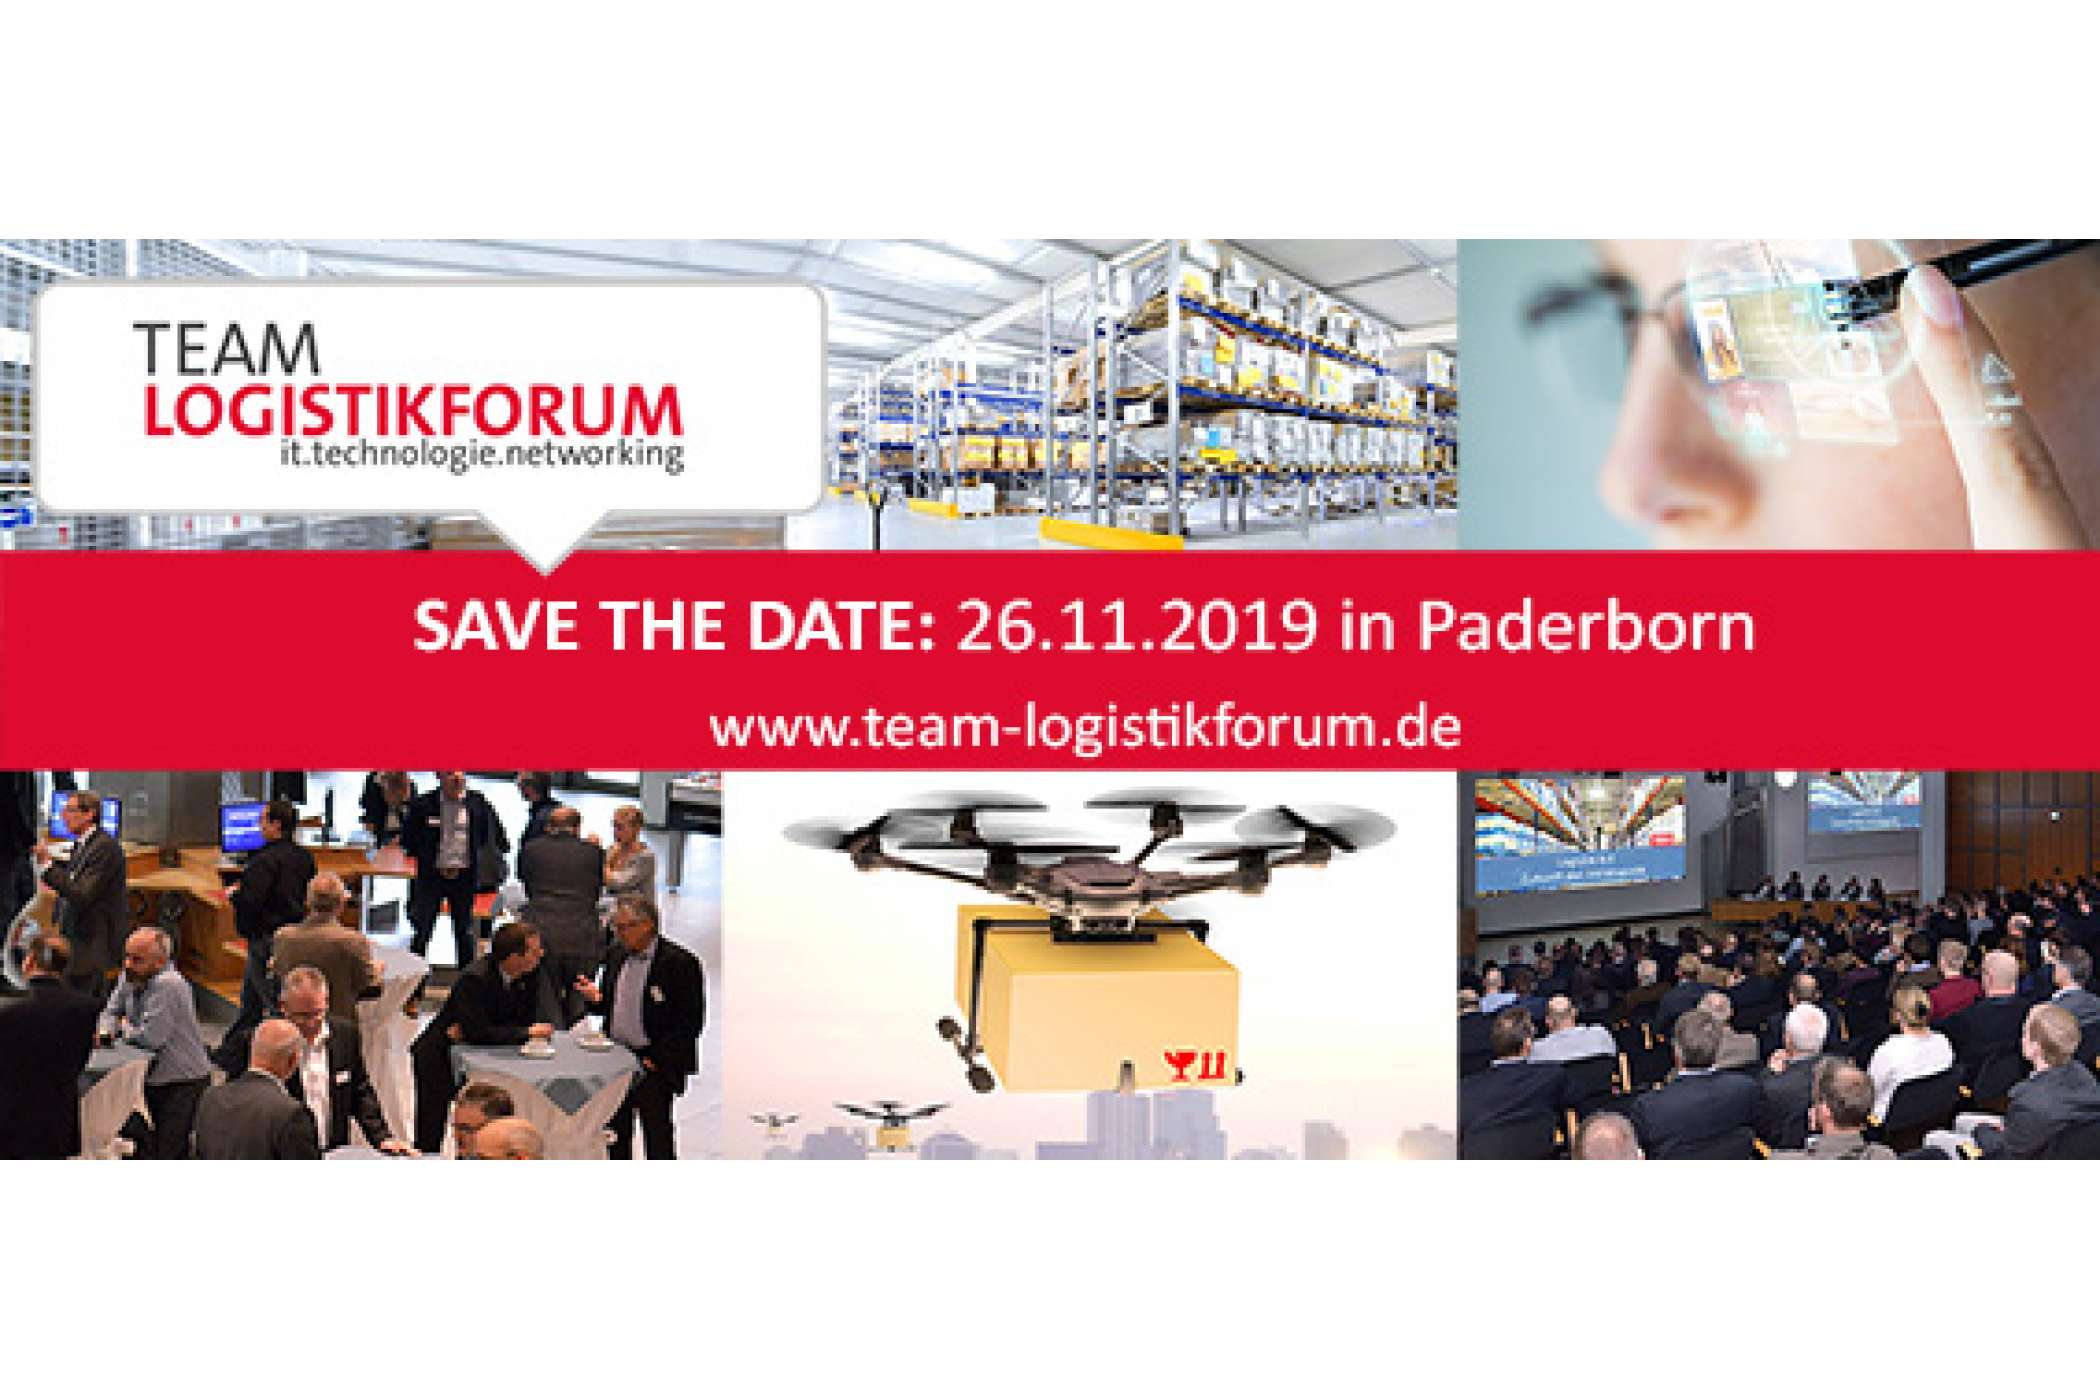 Das 20. TEAMLogistikforum steht an: am 26.11.2019 in Paderborn